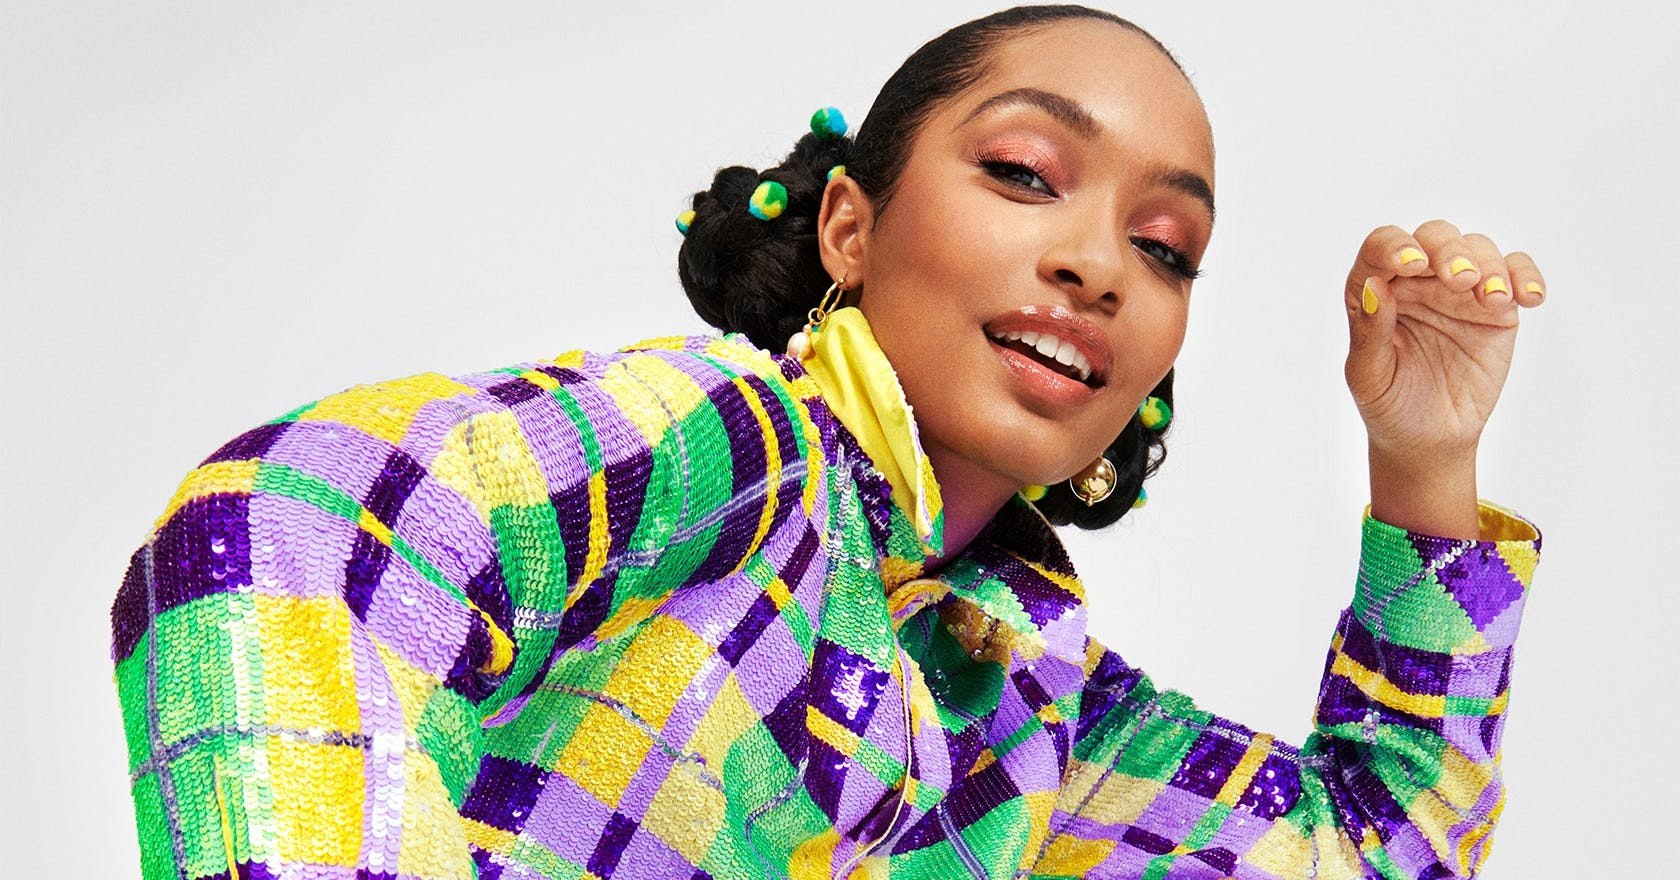 Yara Shahidi on what it really means to be a young woman in 2019